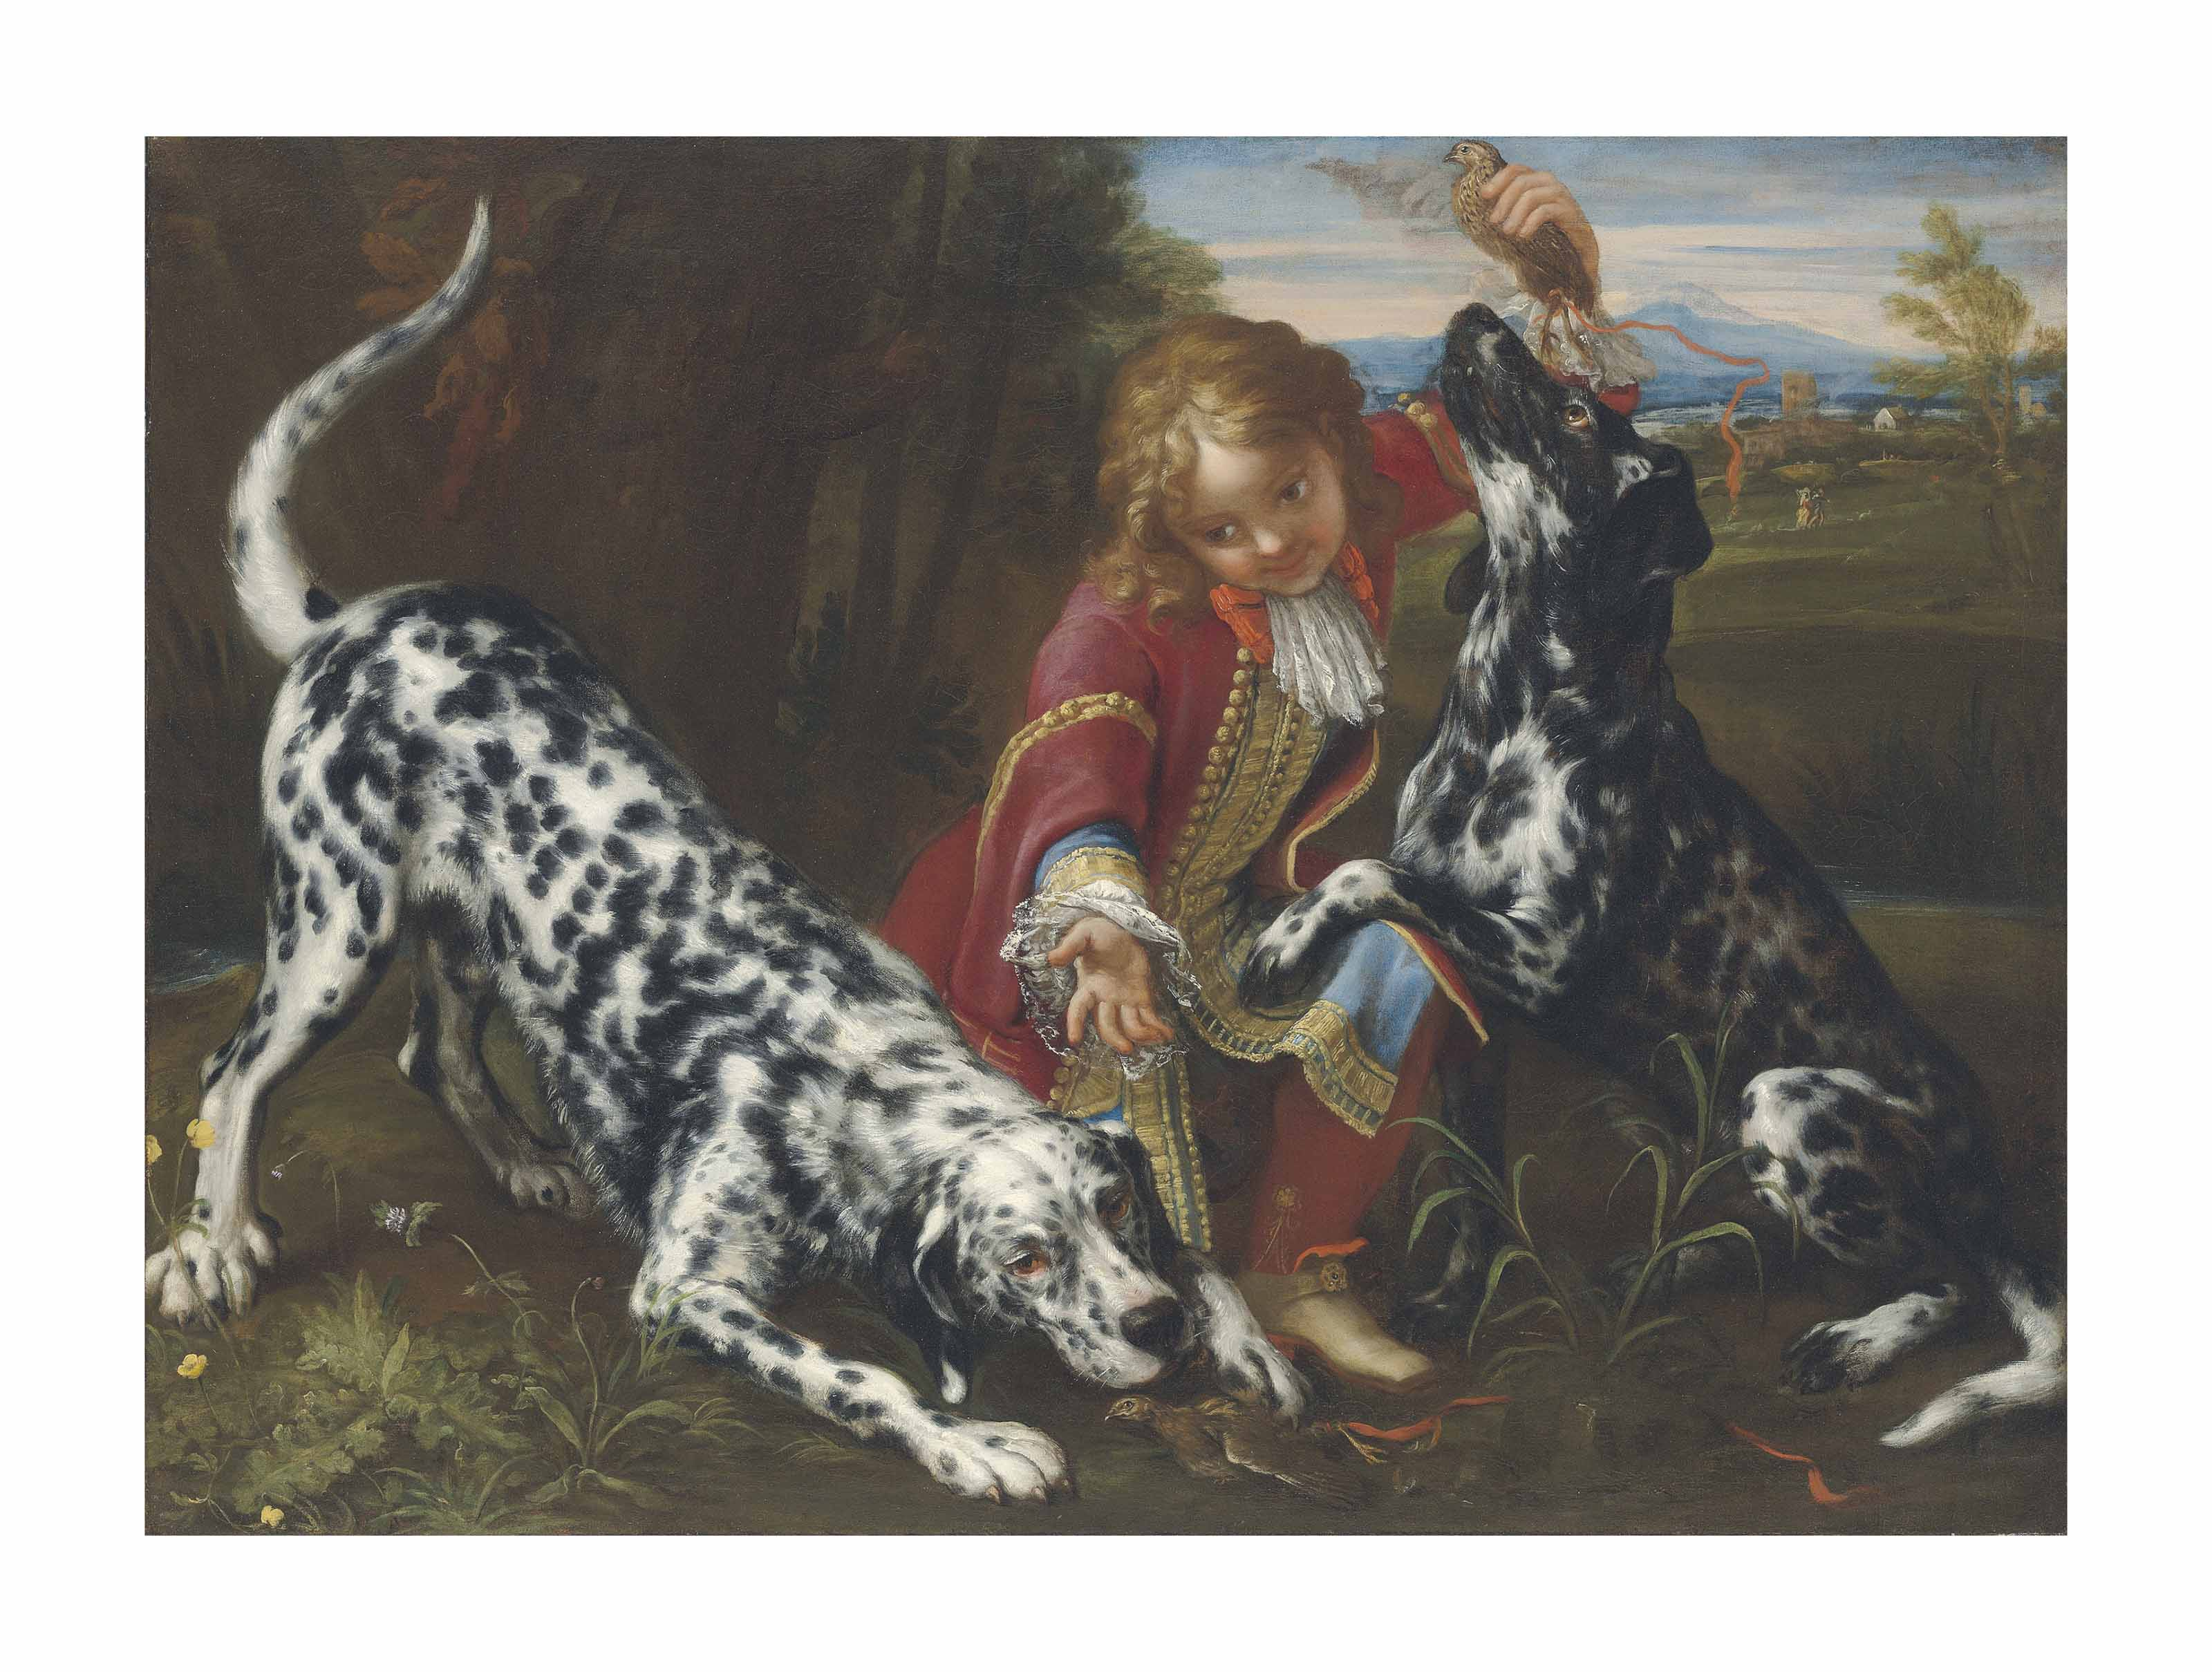 A young boy in livery with two English setters in a landscape